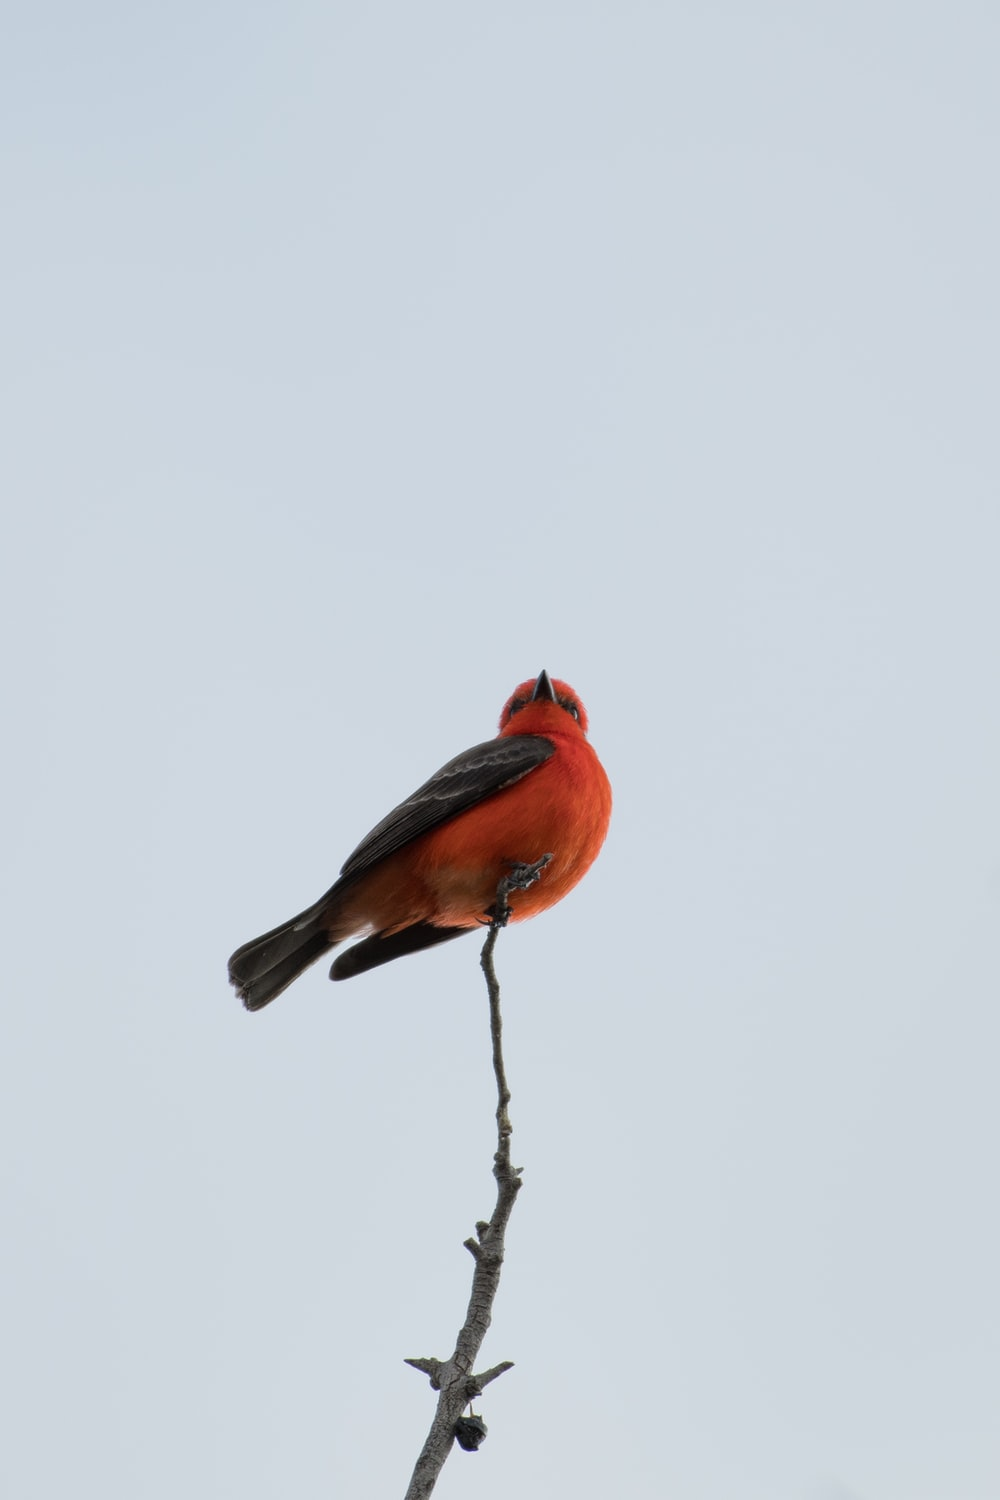 orange and black bird perched on tree branch